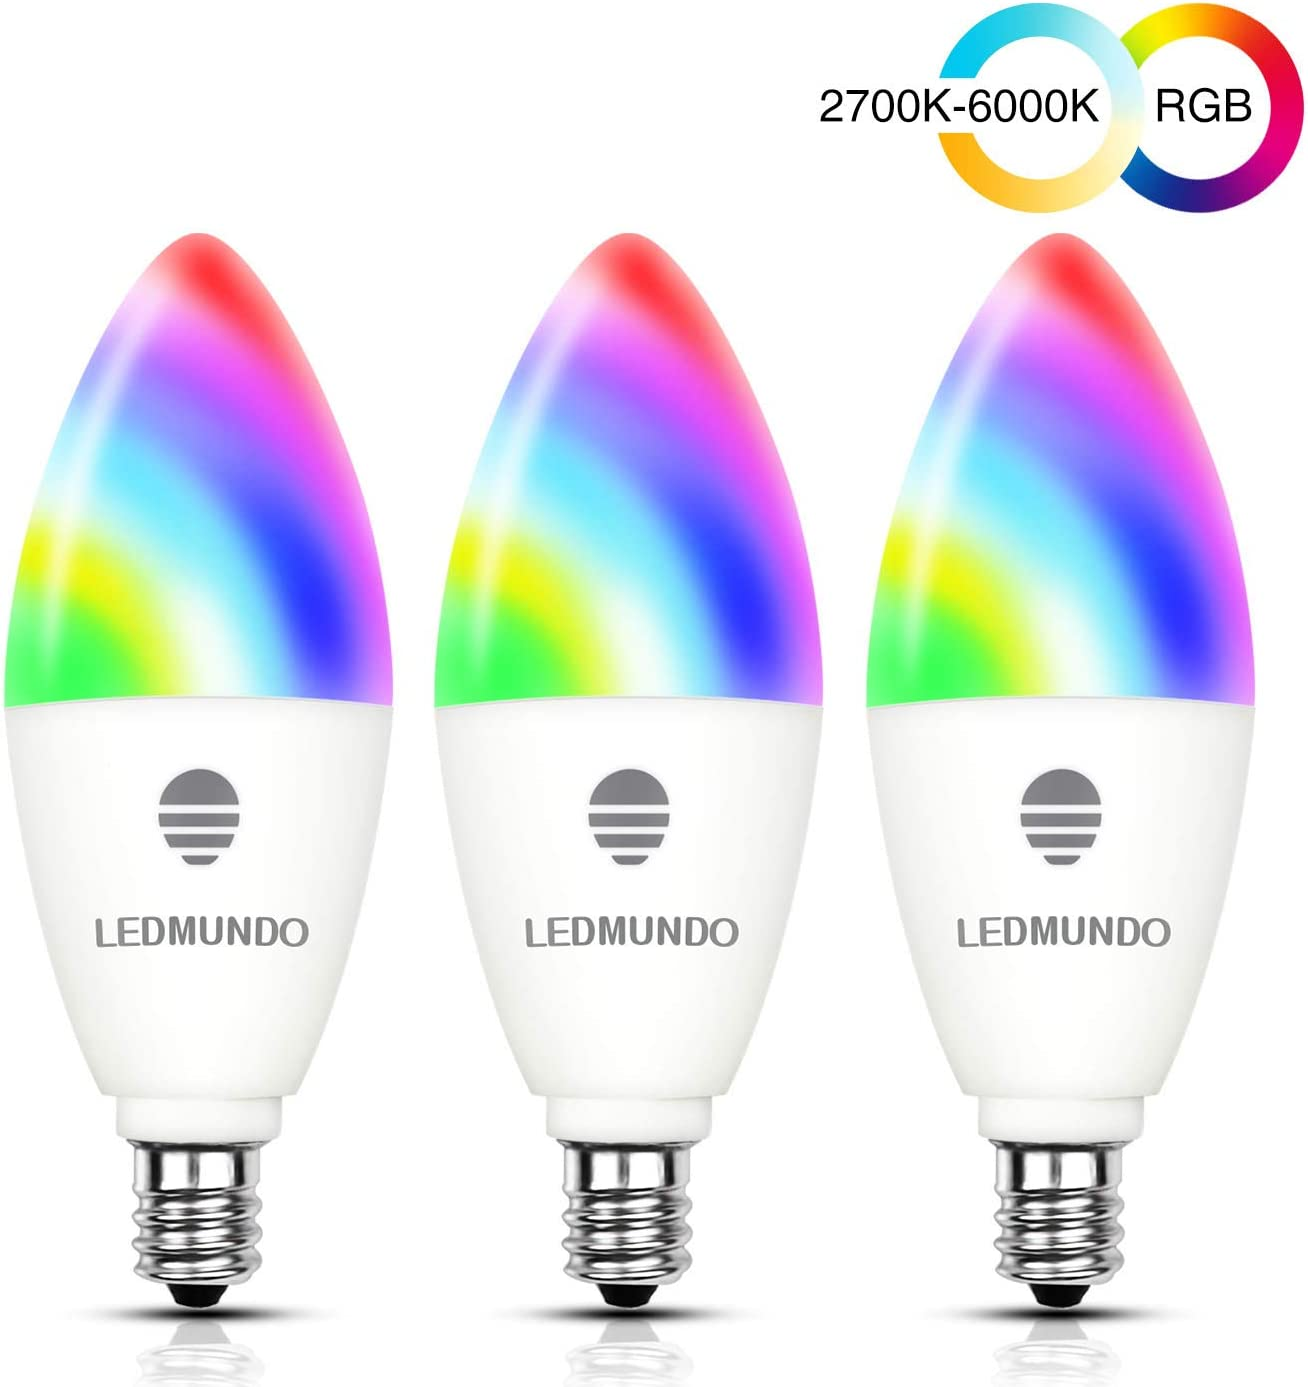 Smart Light Bulbs with White Light 2700k-6000k - 6W LED Candalabra Bulb E12 Base - 60W Equivalent - WiFi Multicolor Light Bulb - B11 RGB Color Changing Bulb, Works with Google Assistant, 3 Pack